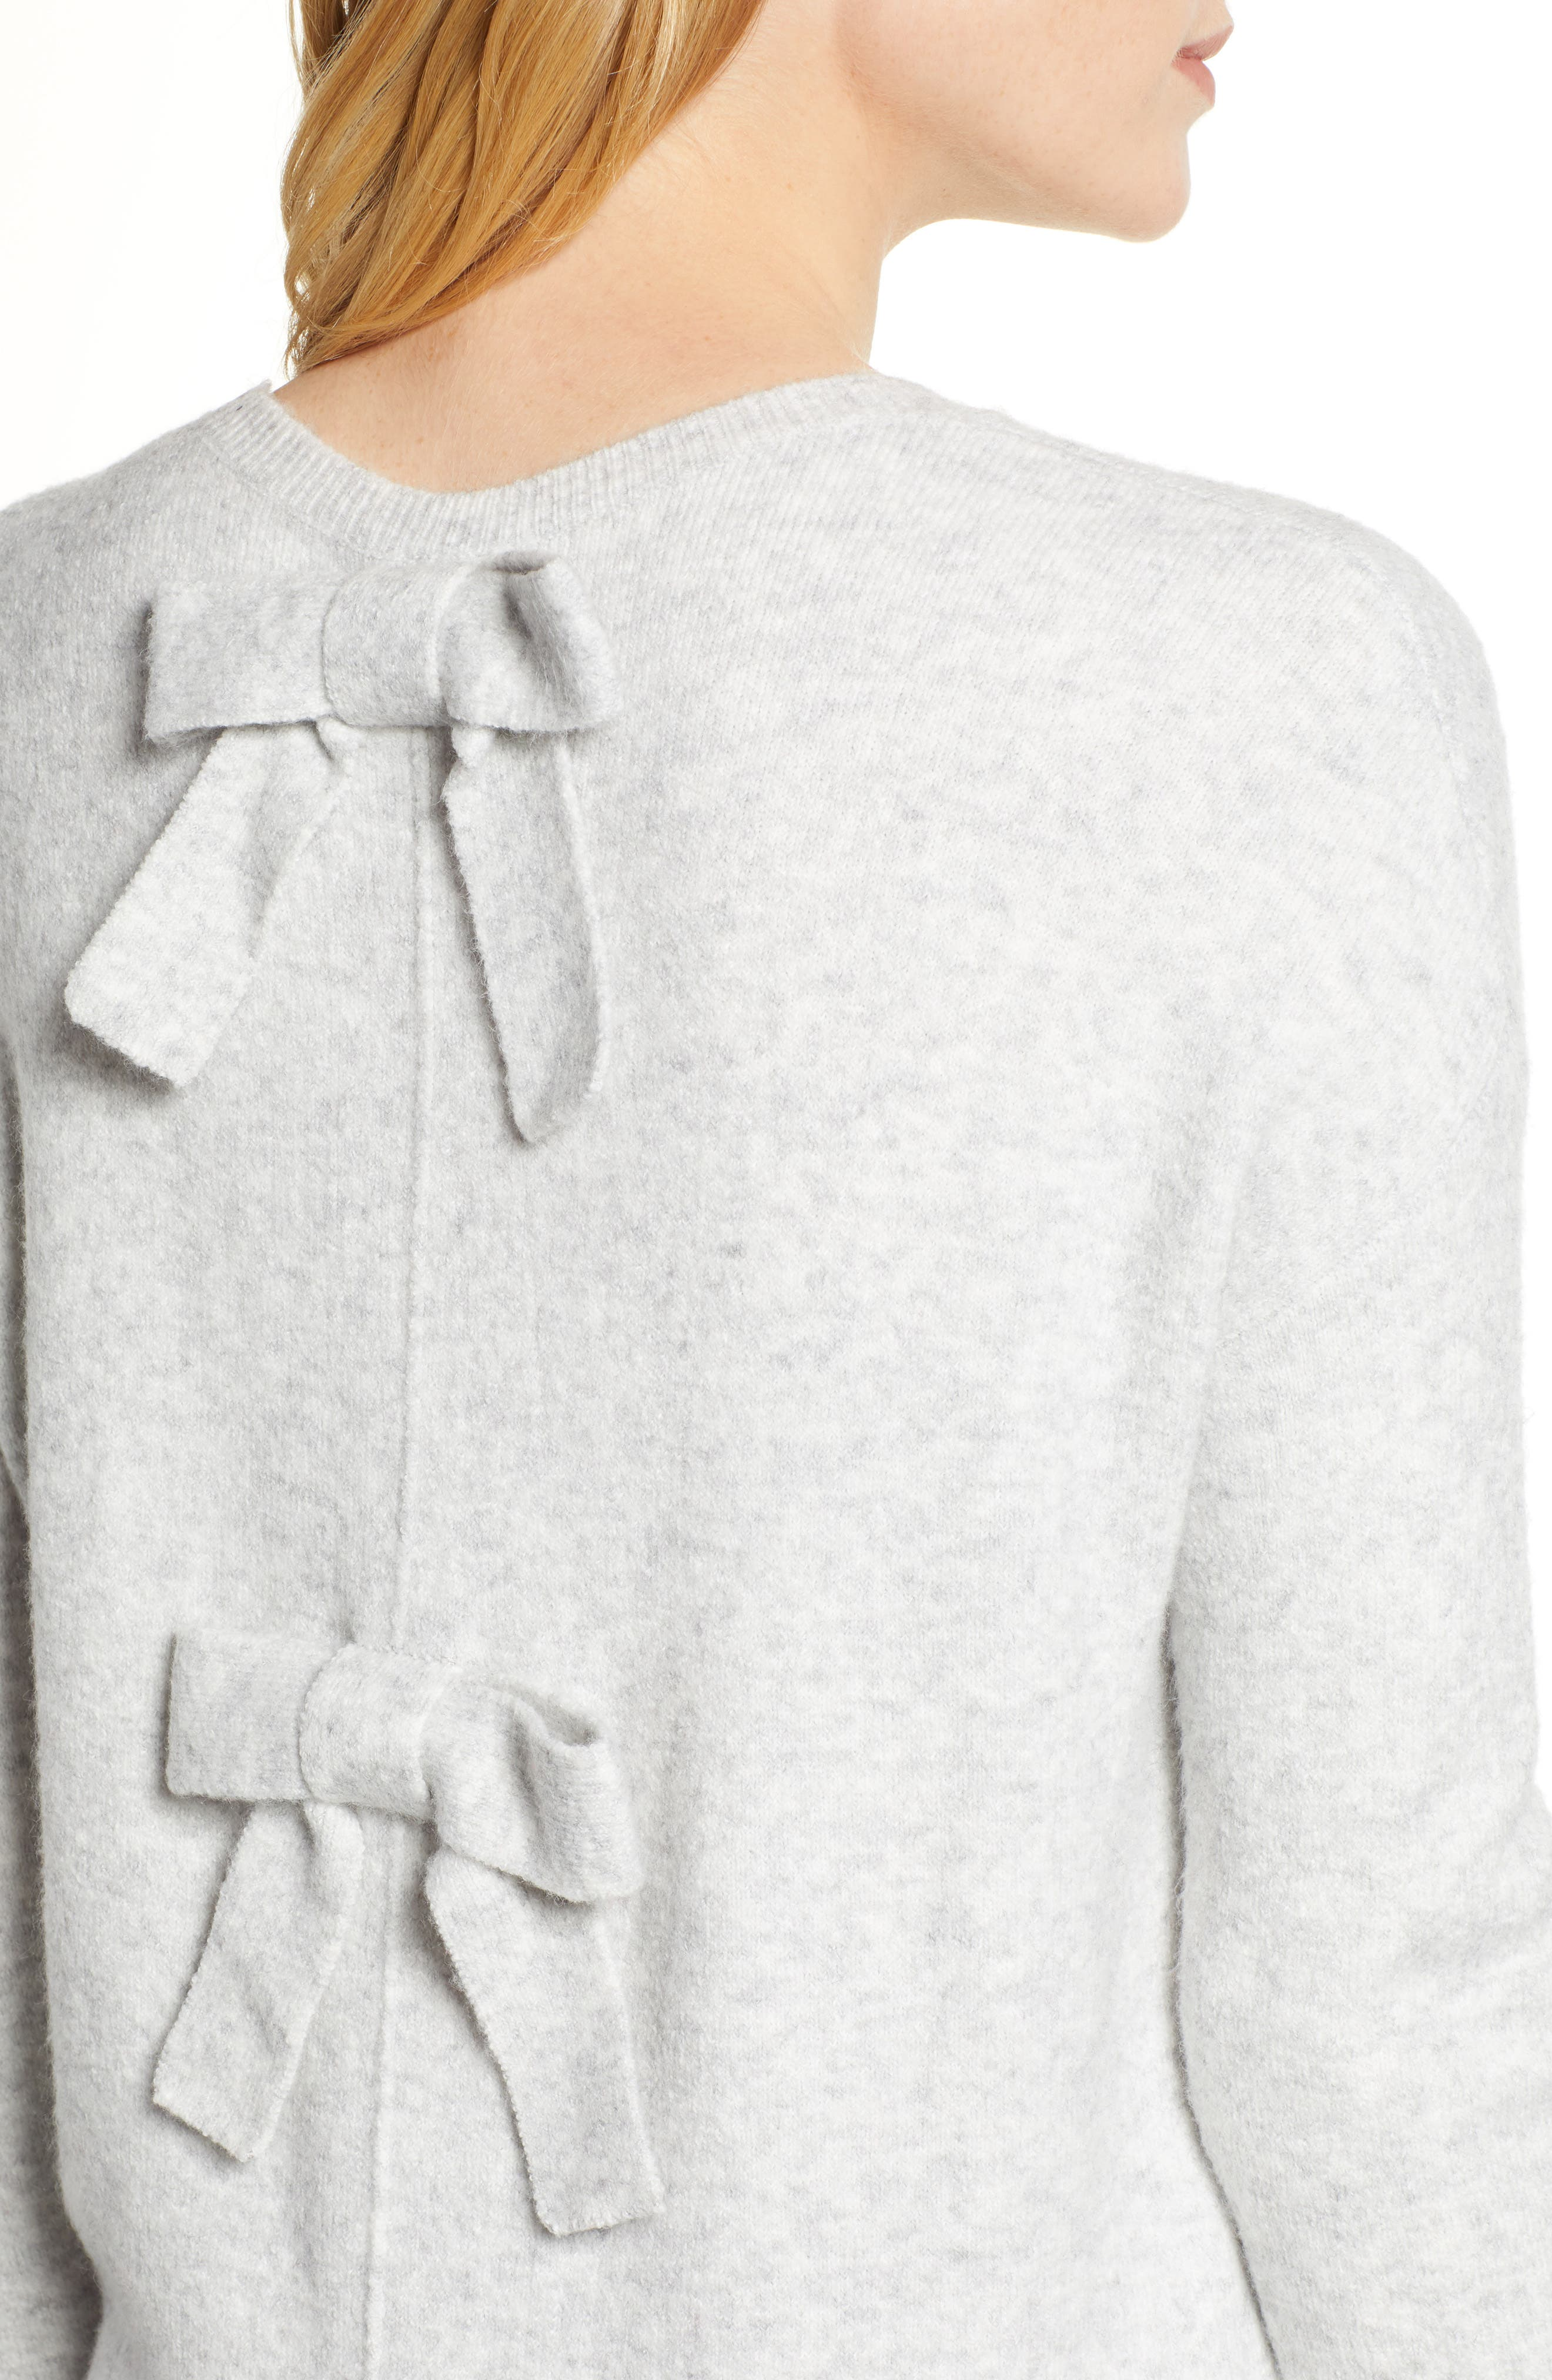 Bow Back Sweater,                             Alternate thumbnail 4, color,                             HEATHER LIGHT GREY